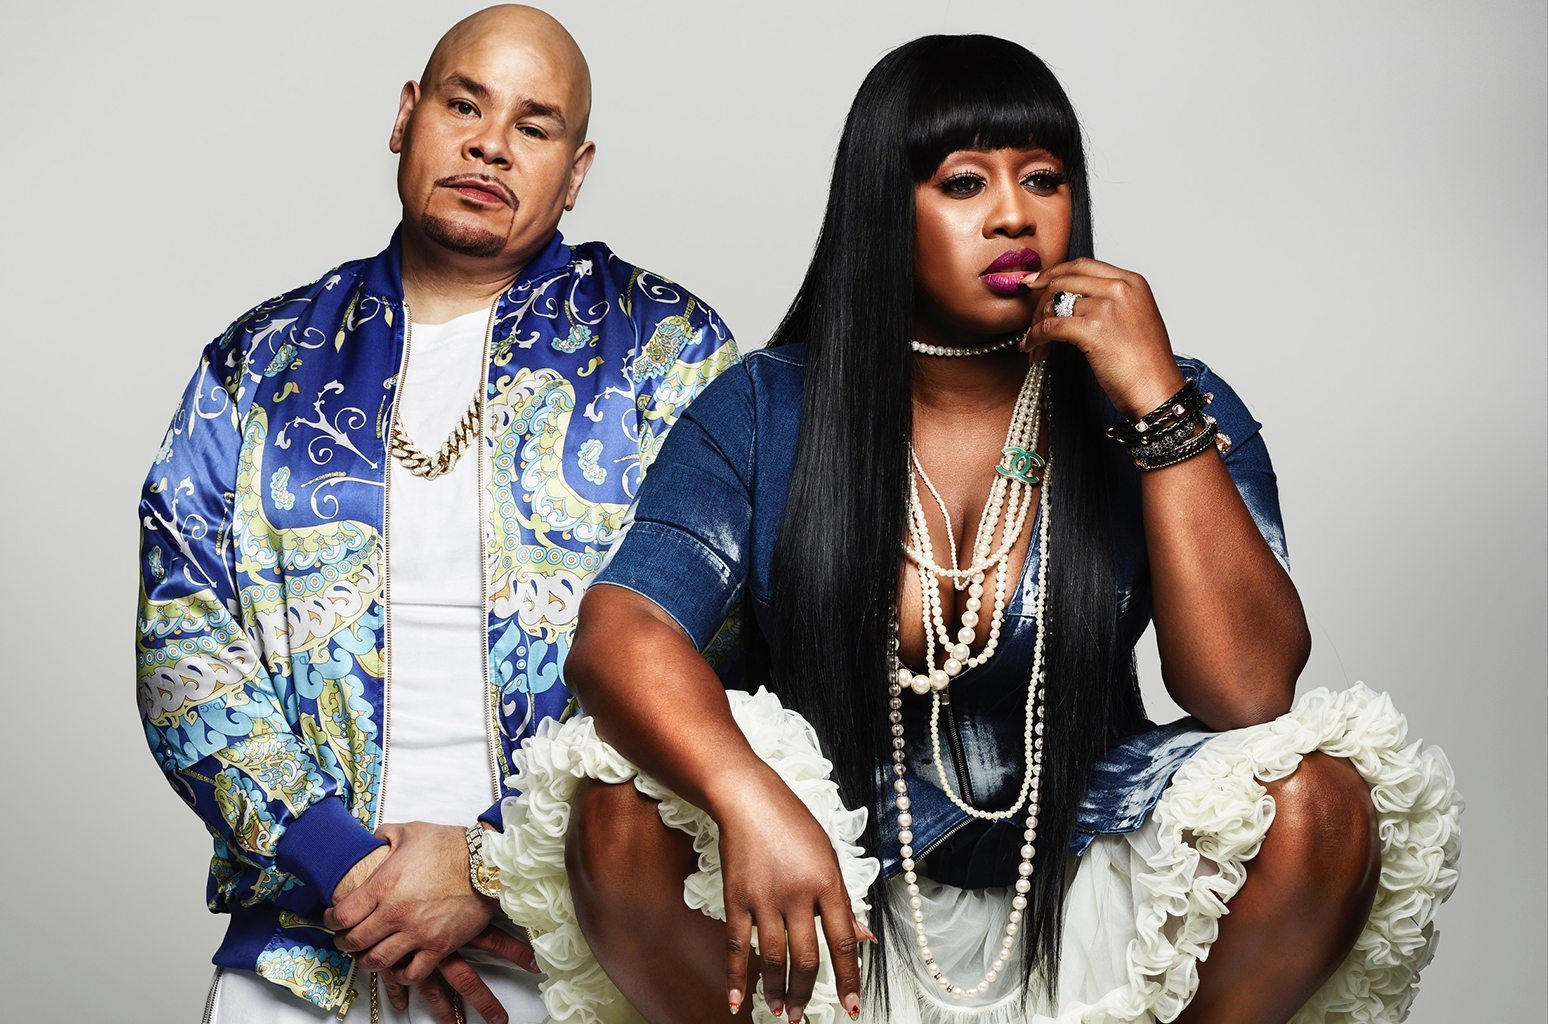 Fat Joe and Remy Ma Beef |Throwback Hip Hop Beef! - Hip ...